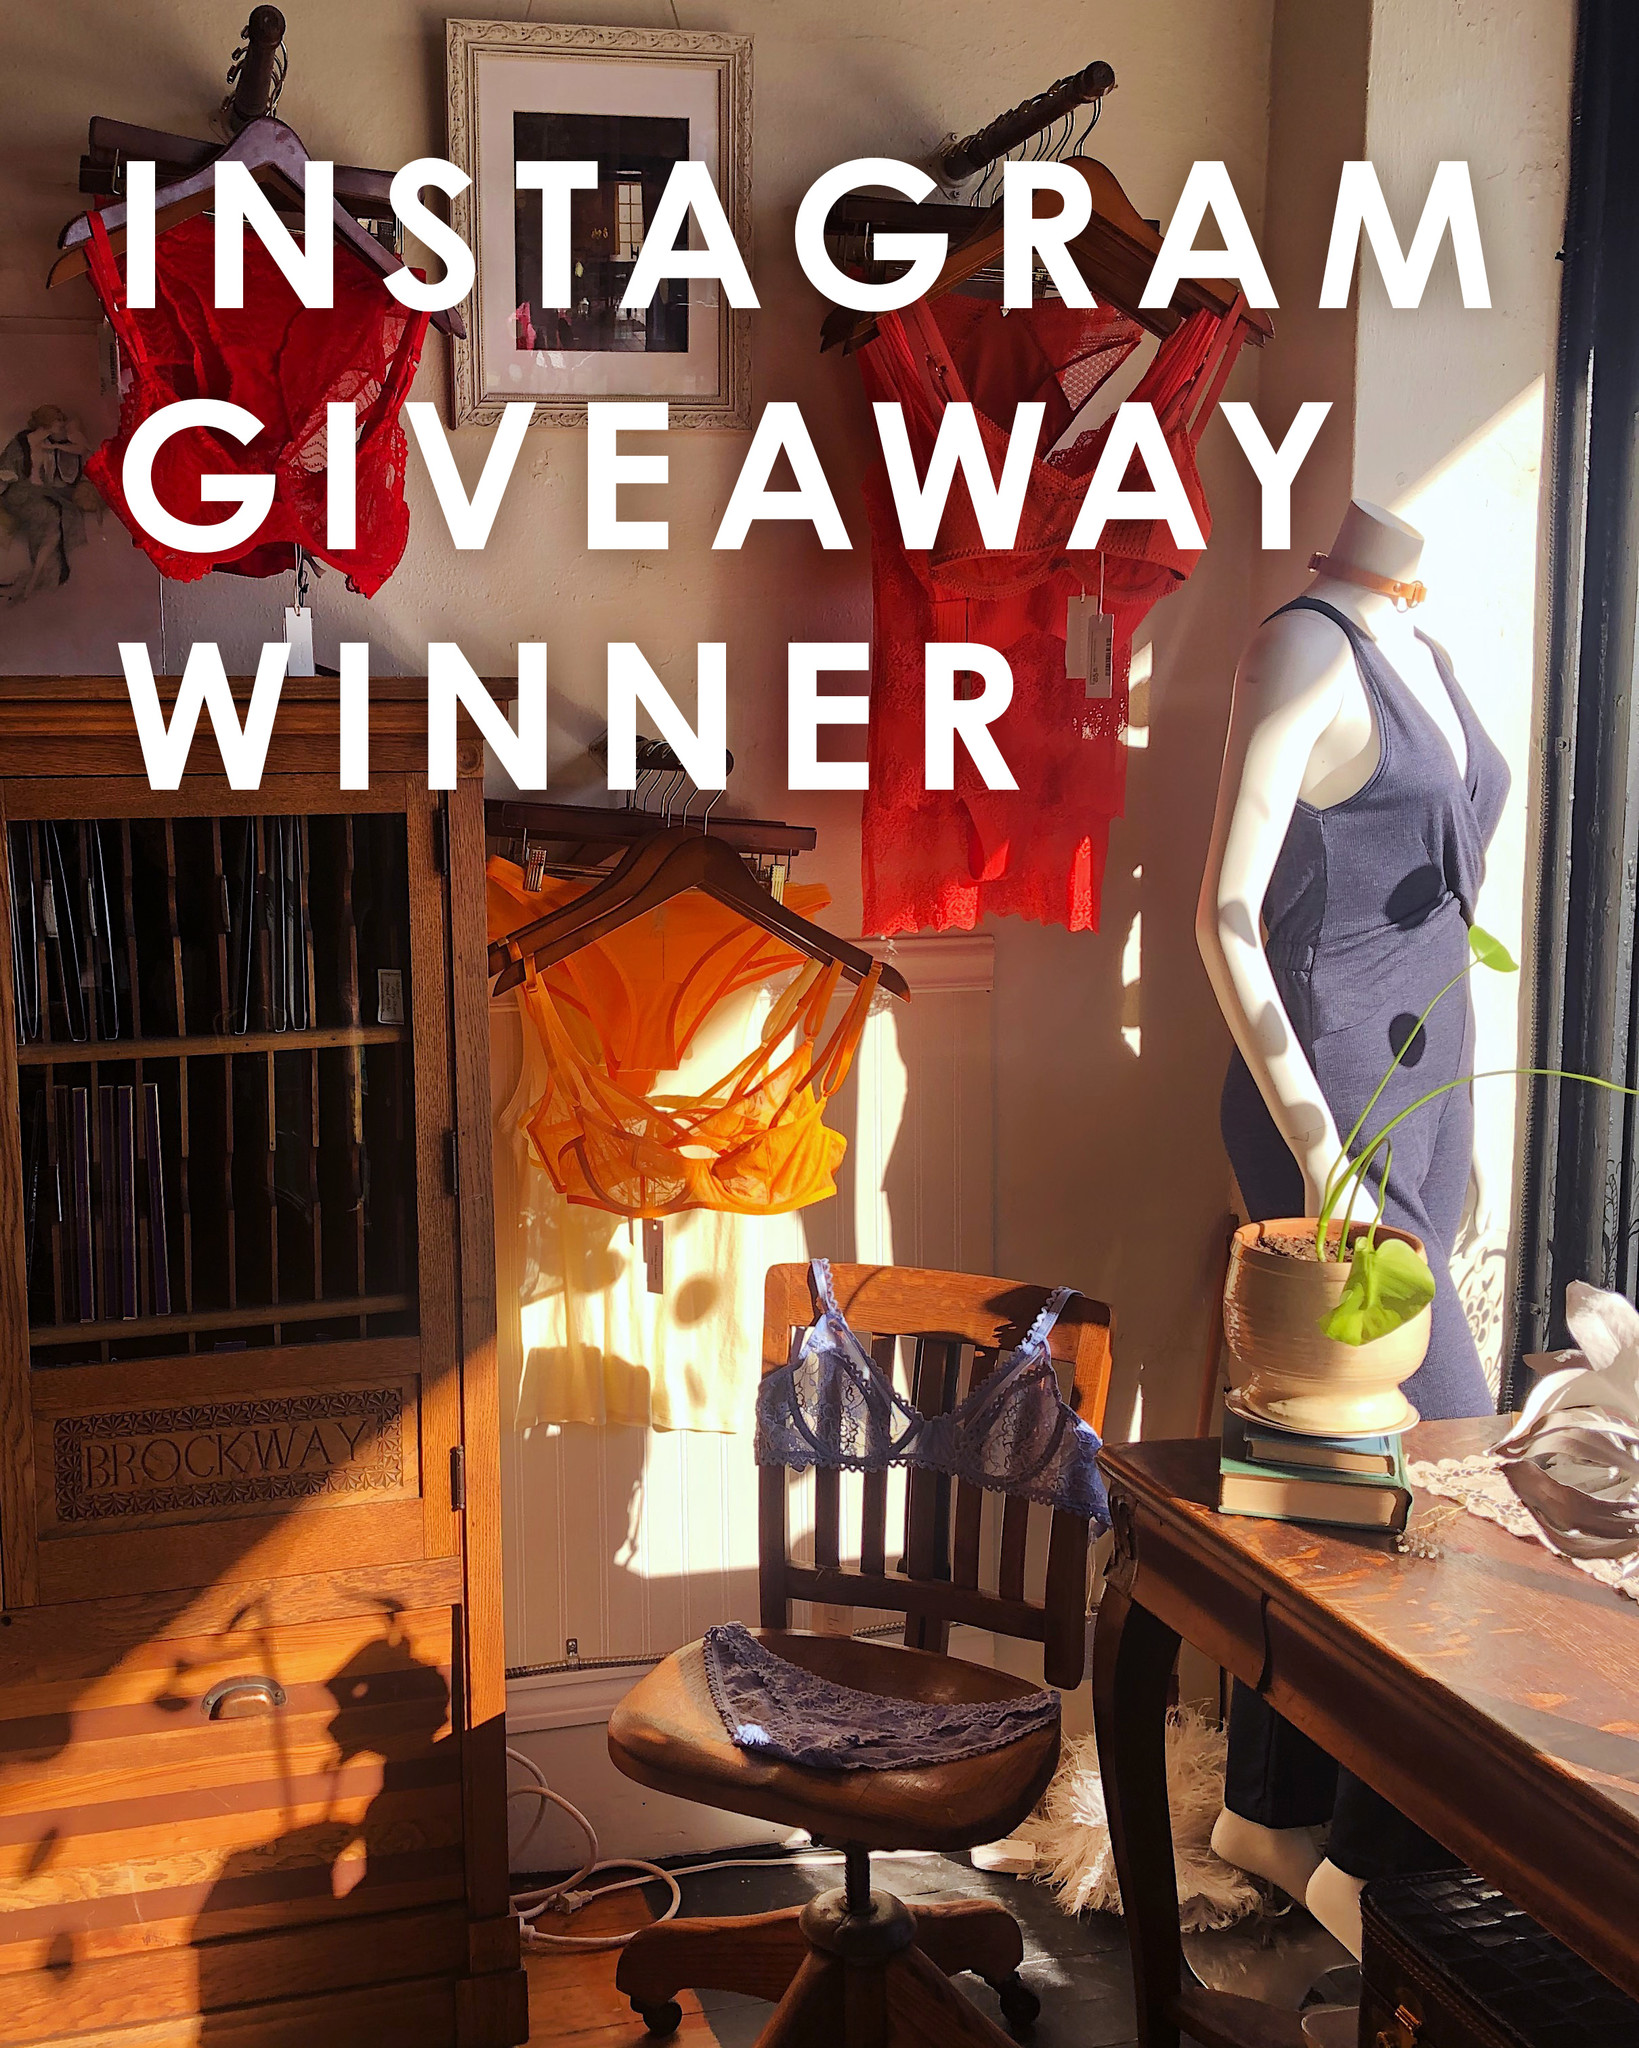 Instagram Giveaway Winner